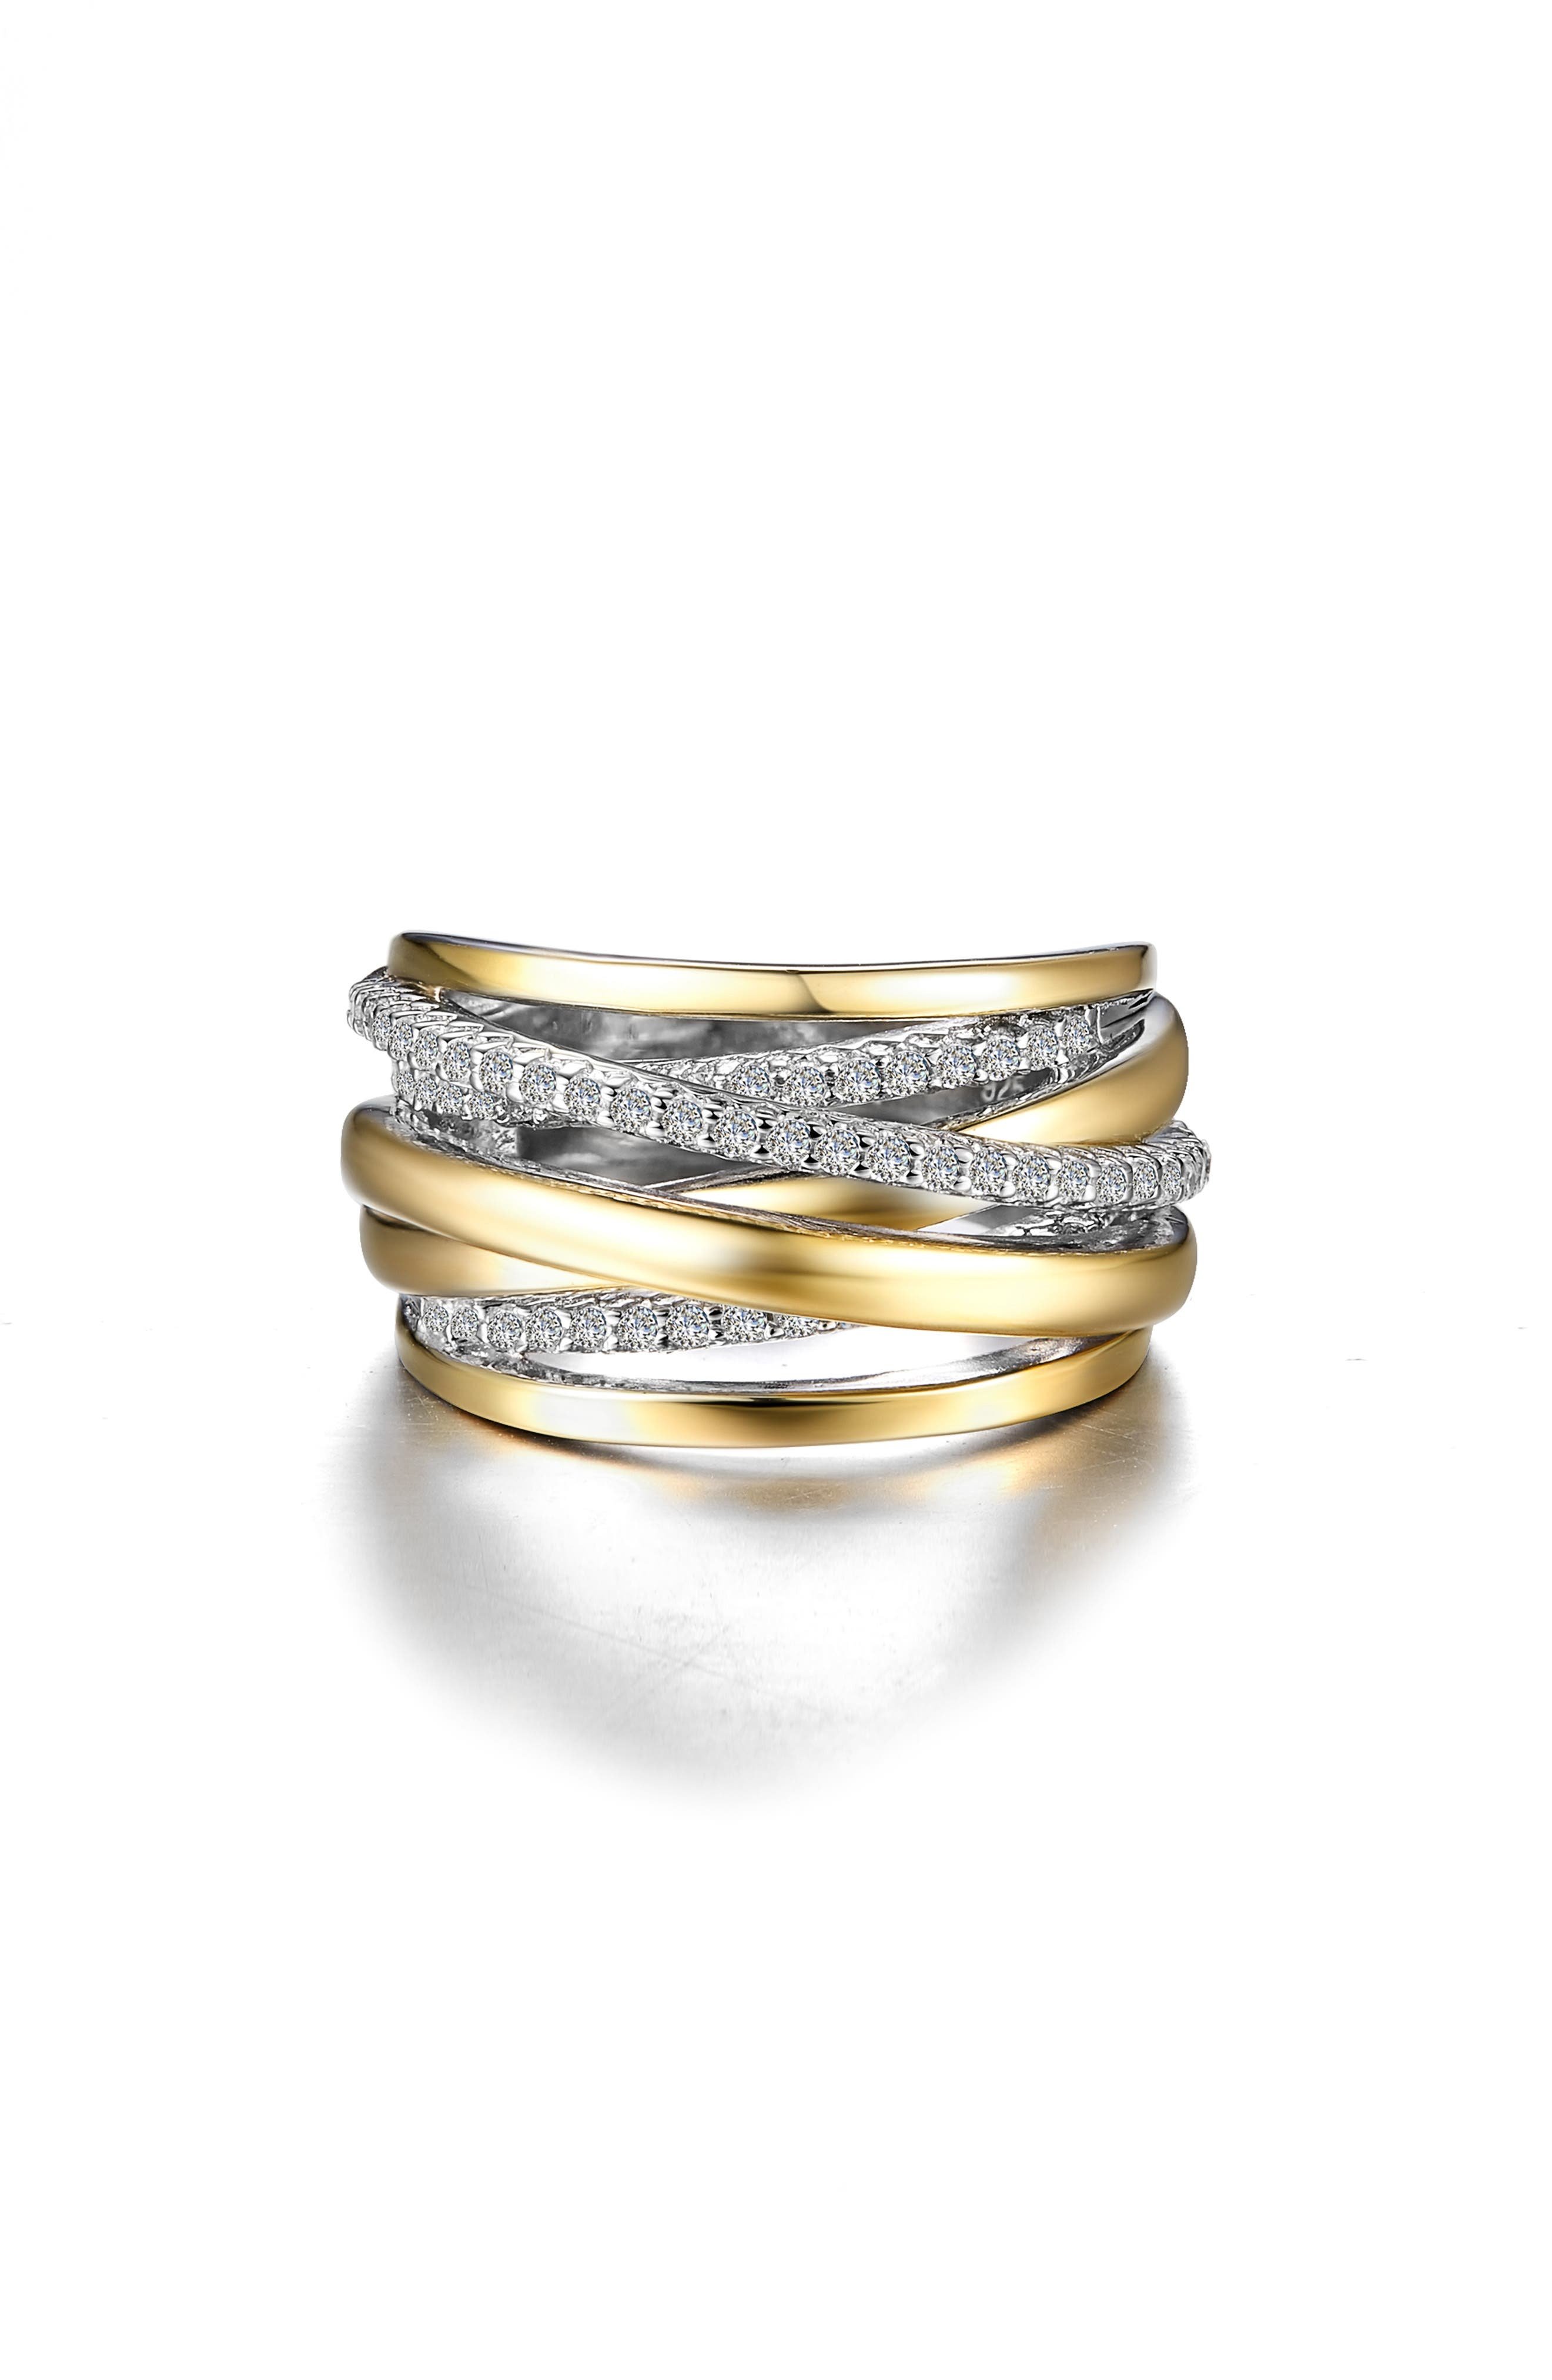 This two-tone crossover ring features 61 signature Lassaire simulated diamonds, for simple yet unparalleled glitter and gleam on your finger. Style Name: Lafonn Simulated Diamond Crossover Ring. Style Number: 5702779. Available in stores.